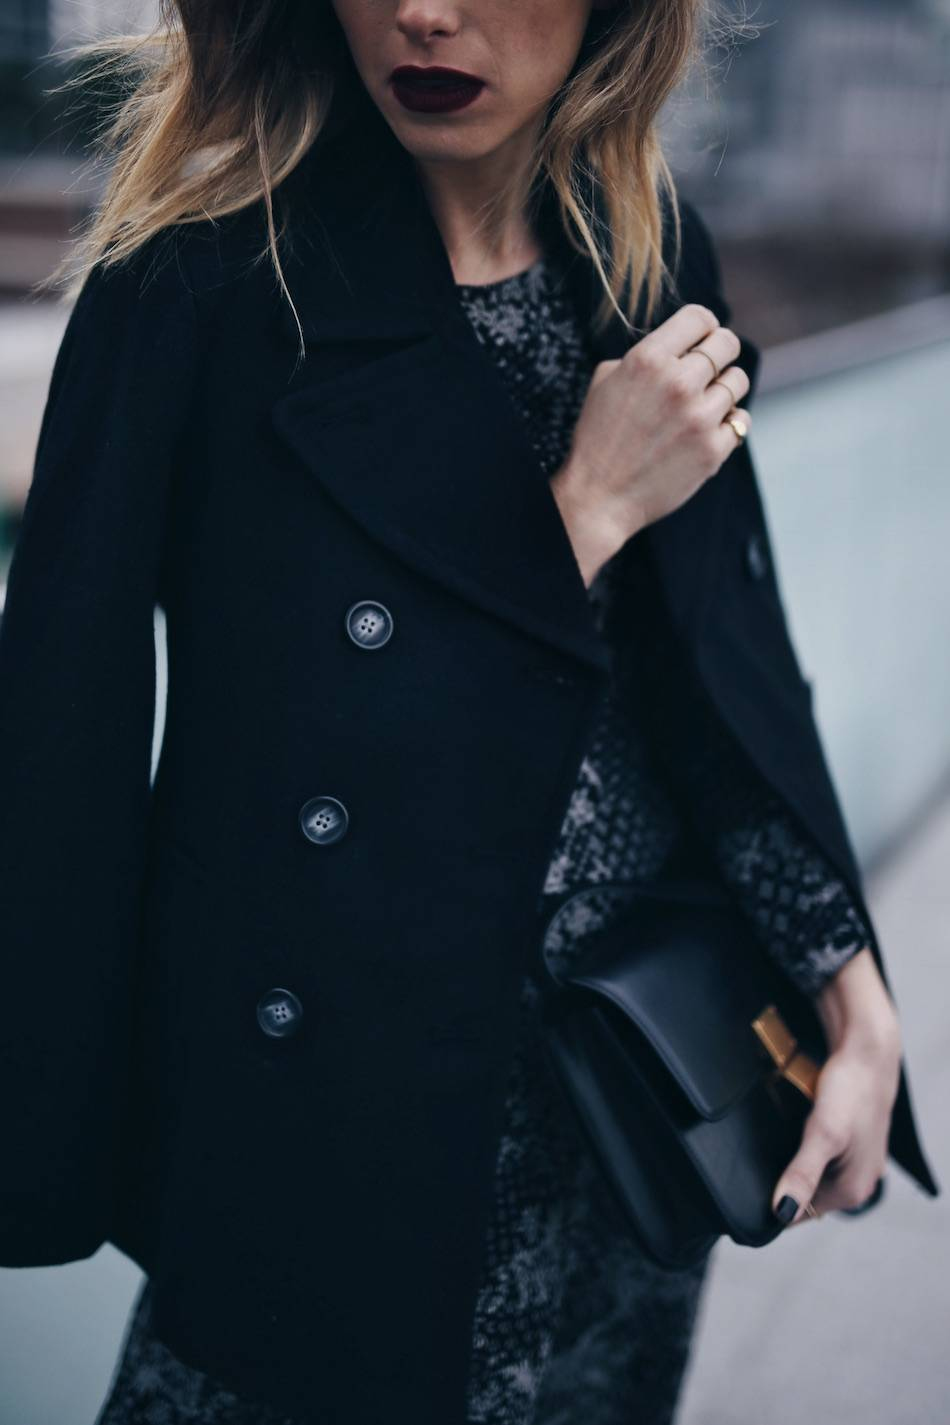 style-blogger-jill-lansky-of-the-august-diaries-showing-holiday-outfit-ideas-2016-in-old-navy-print-dress-celine-box-bag-and-black-peacoat